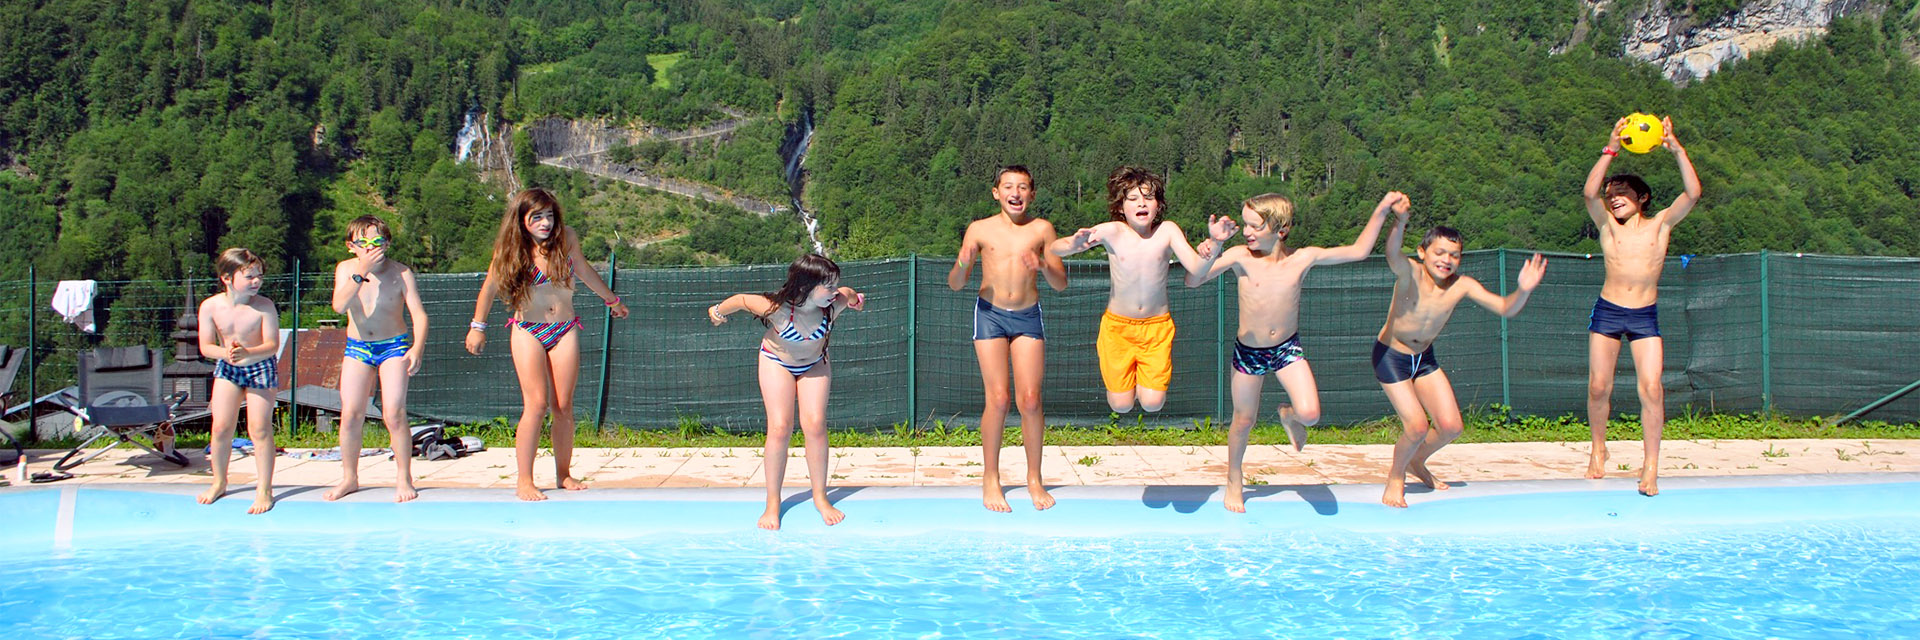 village-club-cap-france-haute-savoie-mont-blanc-le-salvagny-piscine-classe